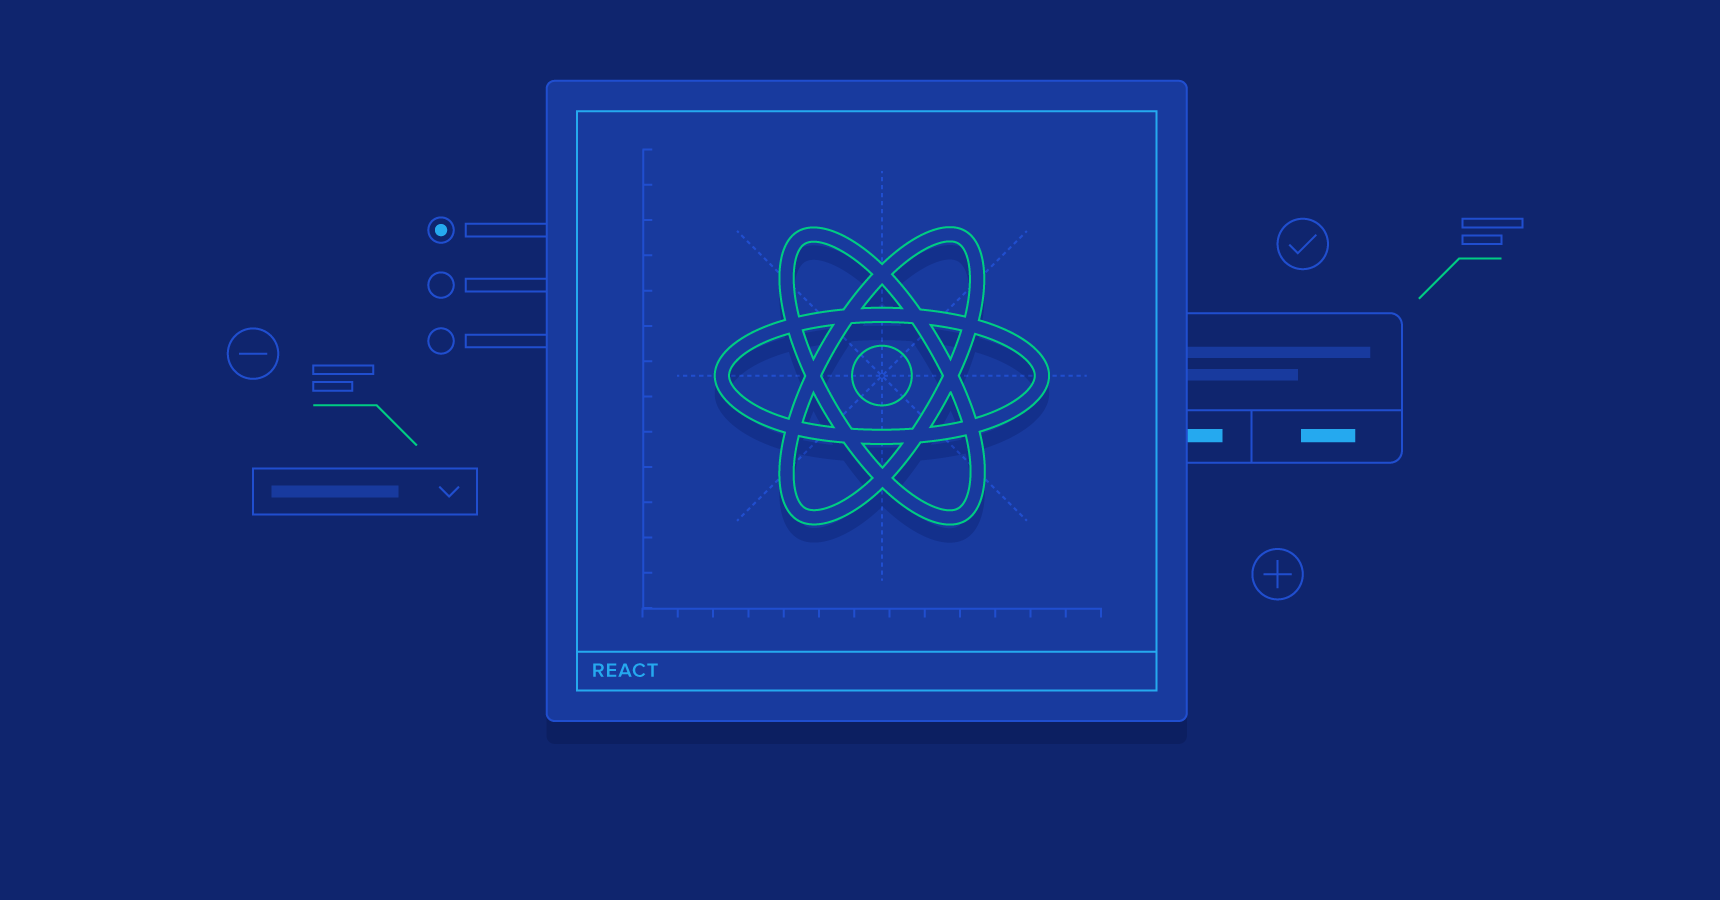 React Tutorial 2019: Hooks, Components, Performance | Toptal